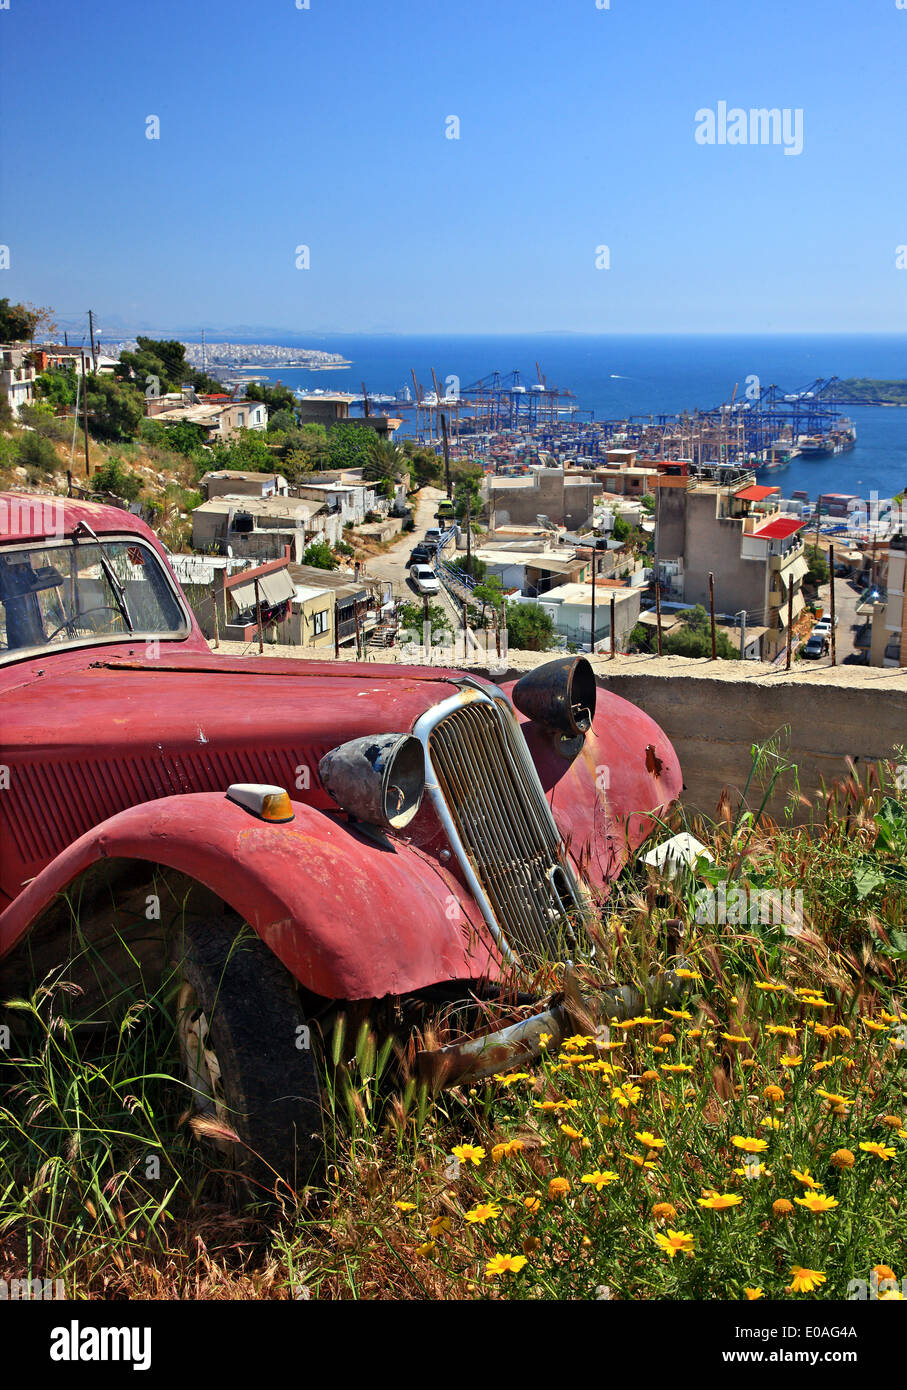 Abandoned old car at Perama, Piraeus, Attica, Greece. In the background you can see the containers' terminal. - Stock Image